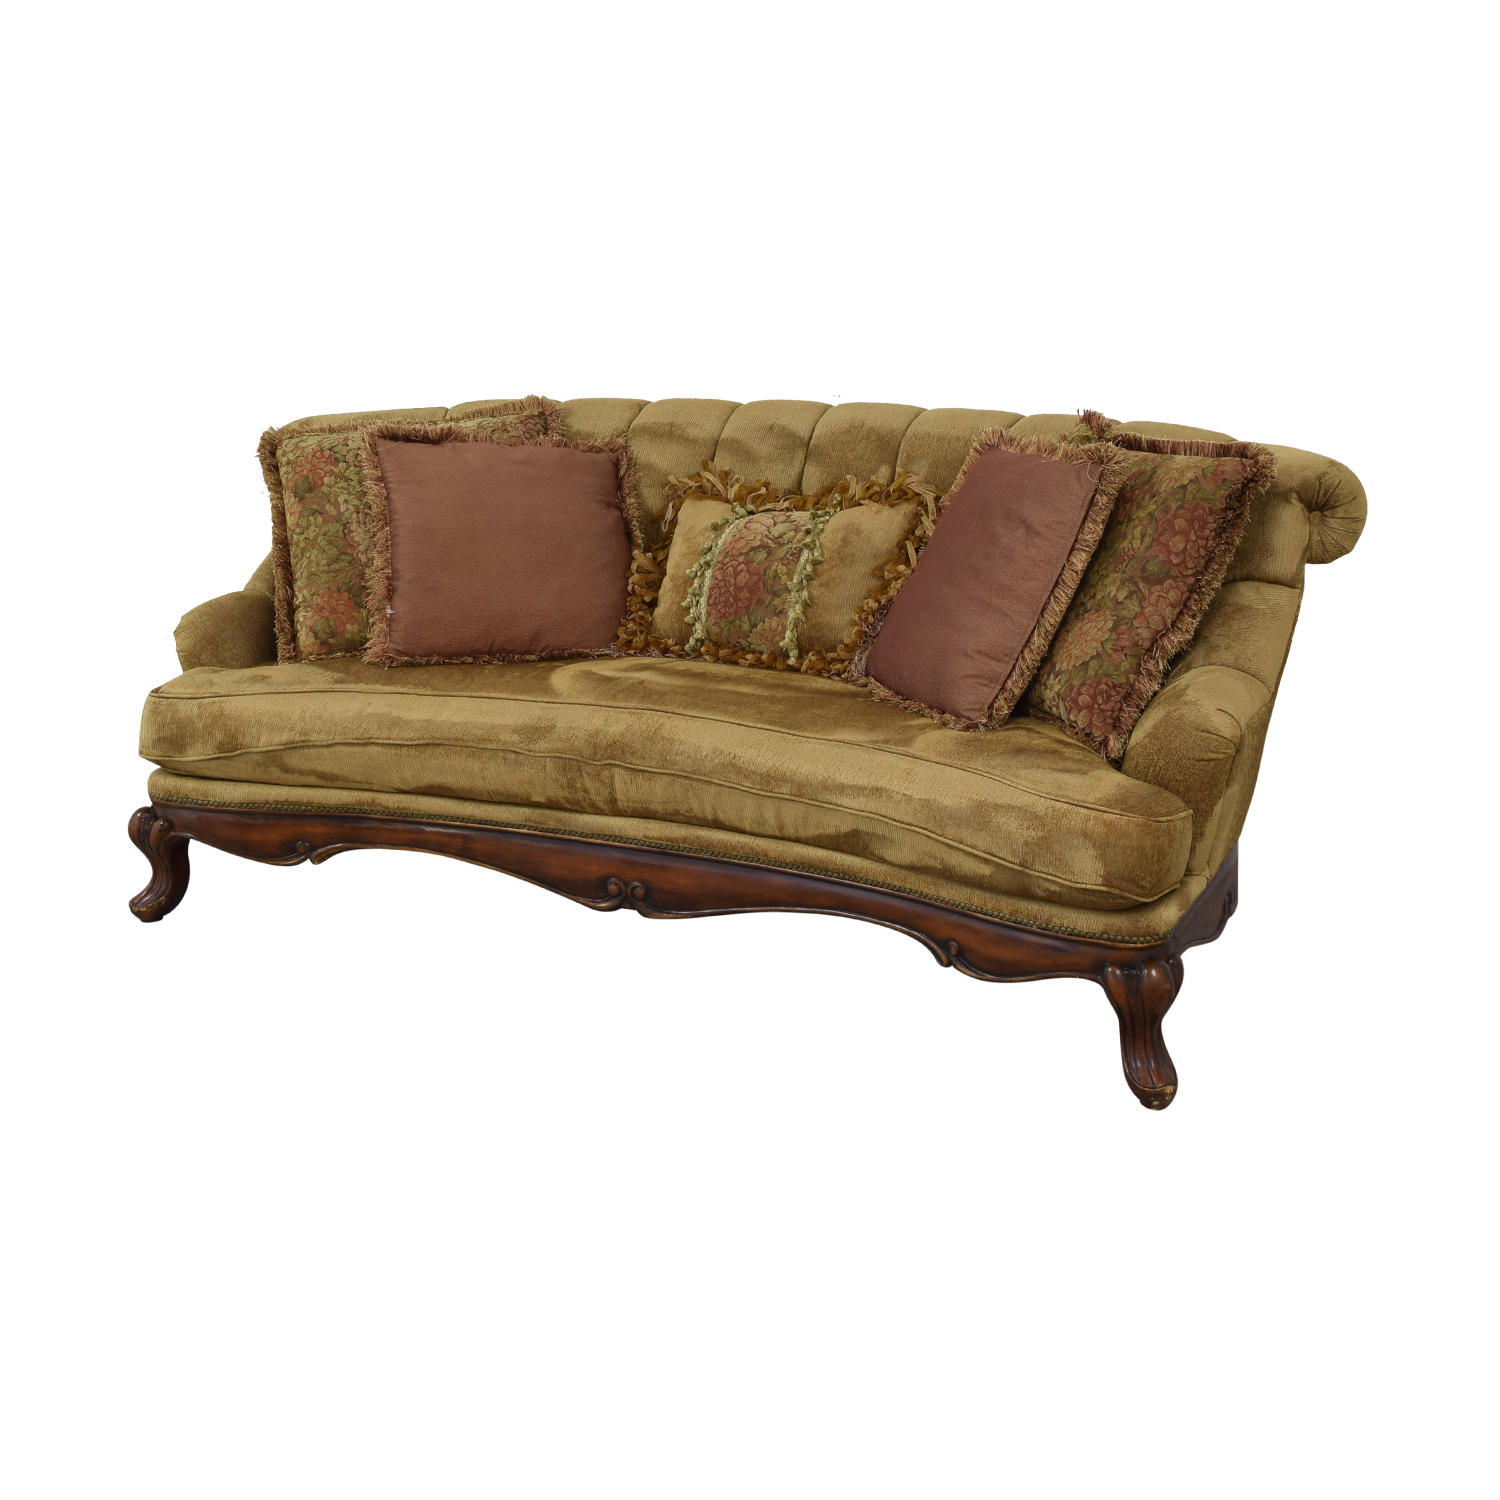 shop Schnadig Composition Collection Sitting Room Sofa Schnadig Sofas